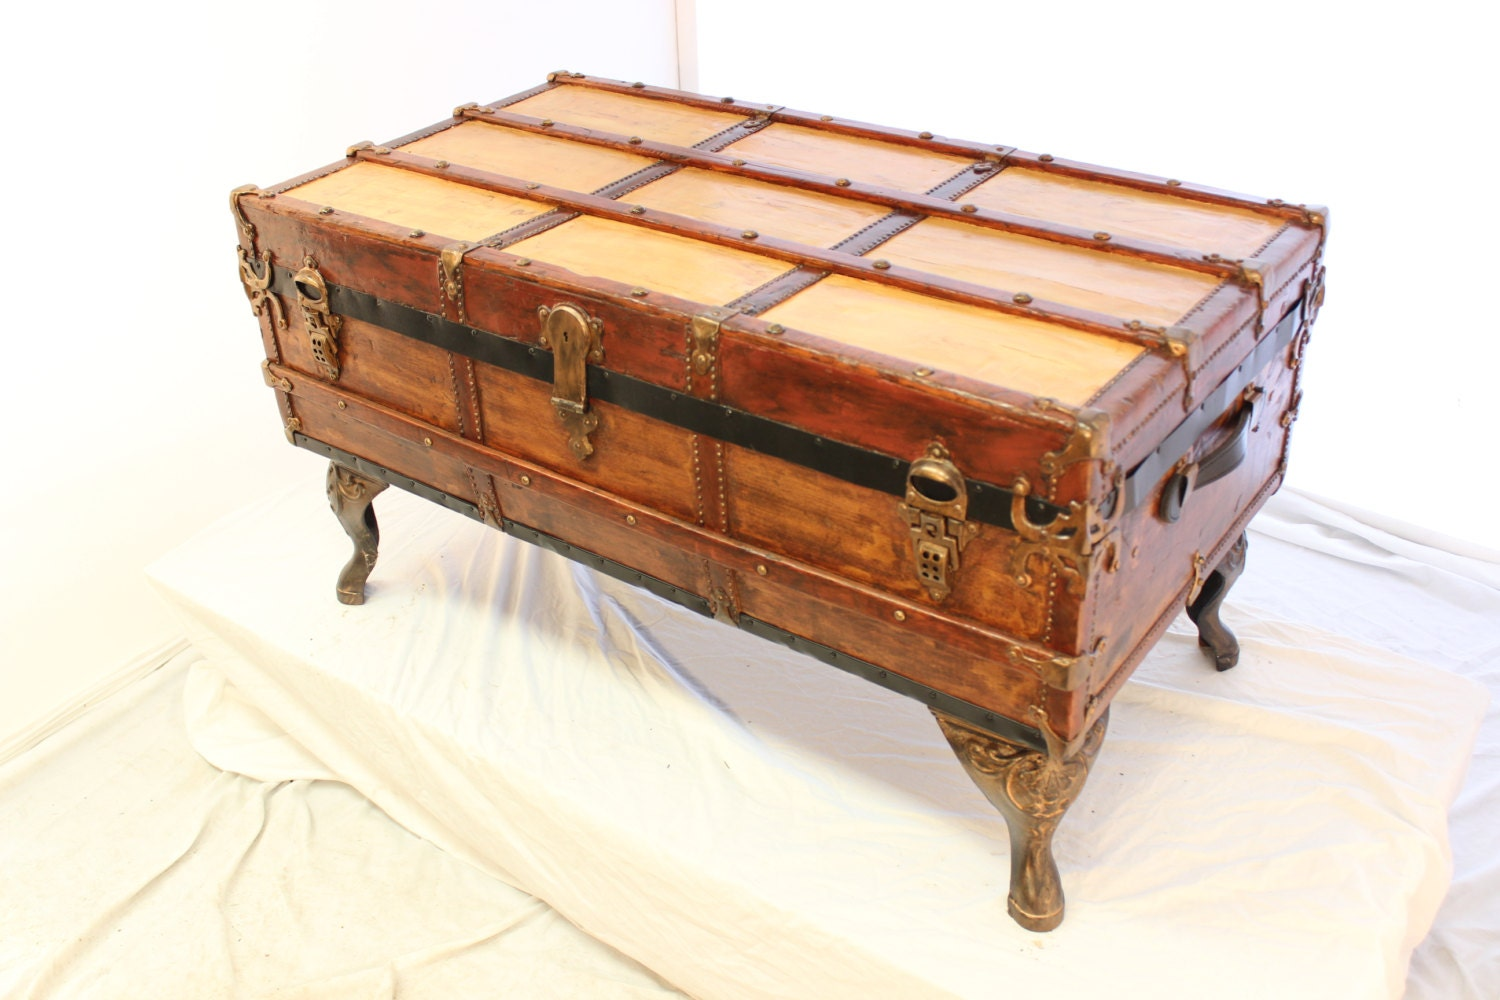 Antique trunk coffee table by telliottworks on etsy Old trunks as coffee tables